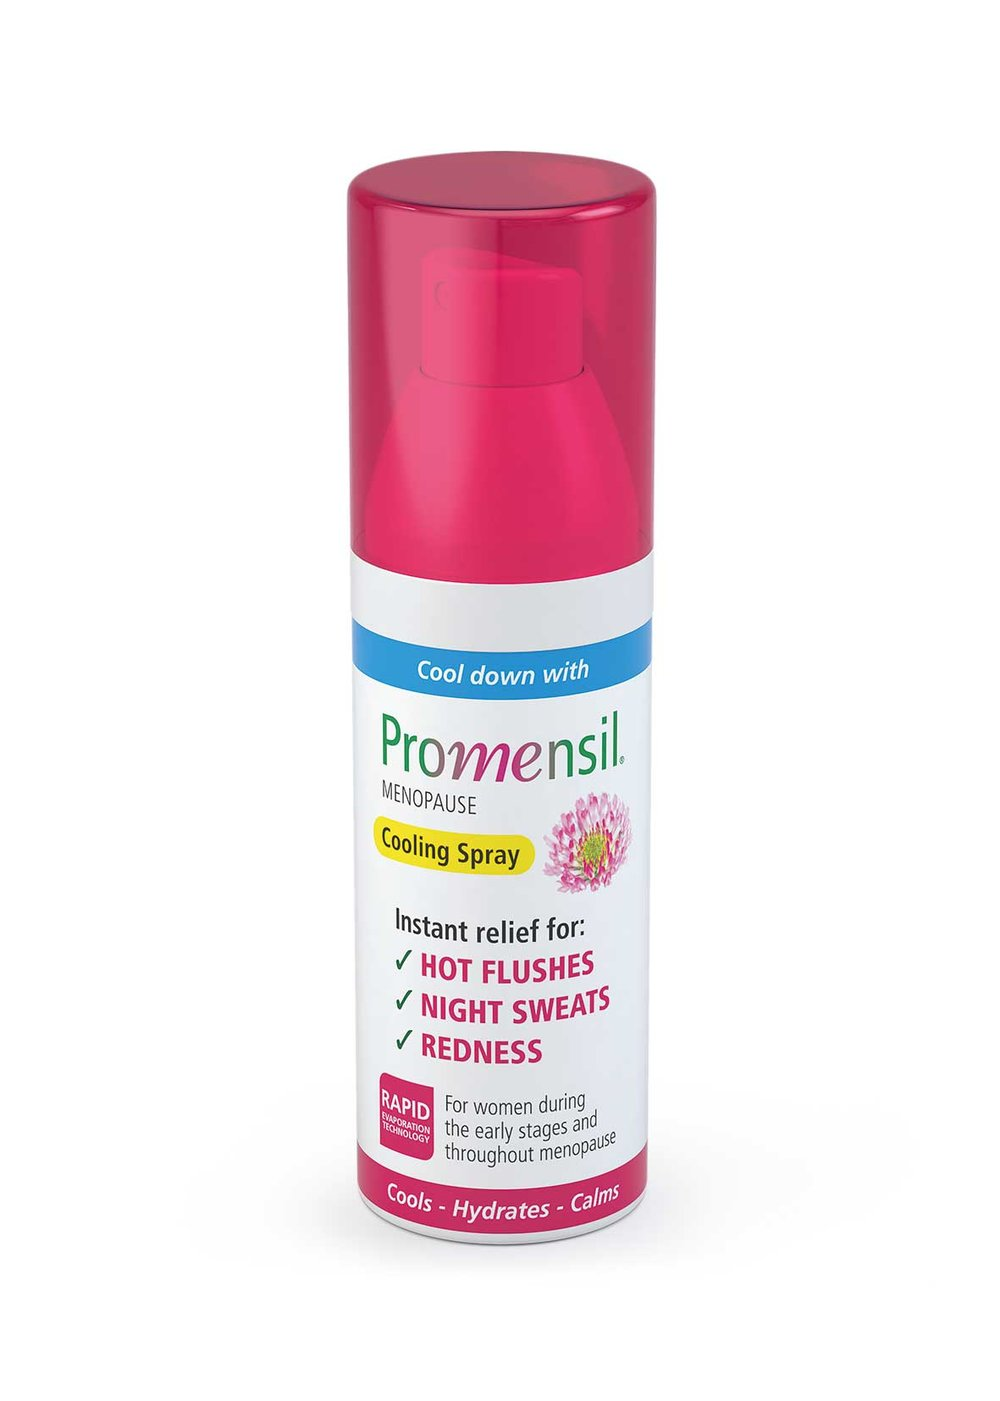 Promensil-75ml-Cooling-Spray-PRINT.jpg